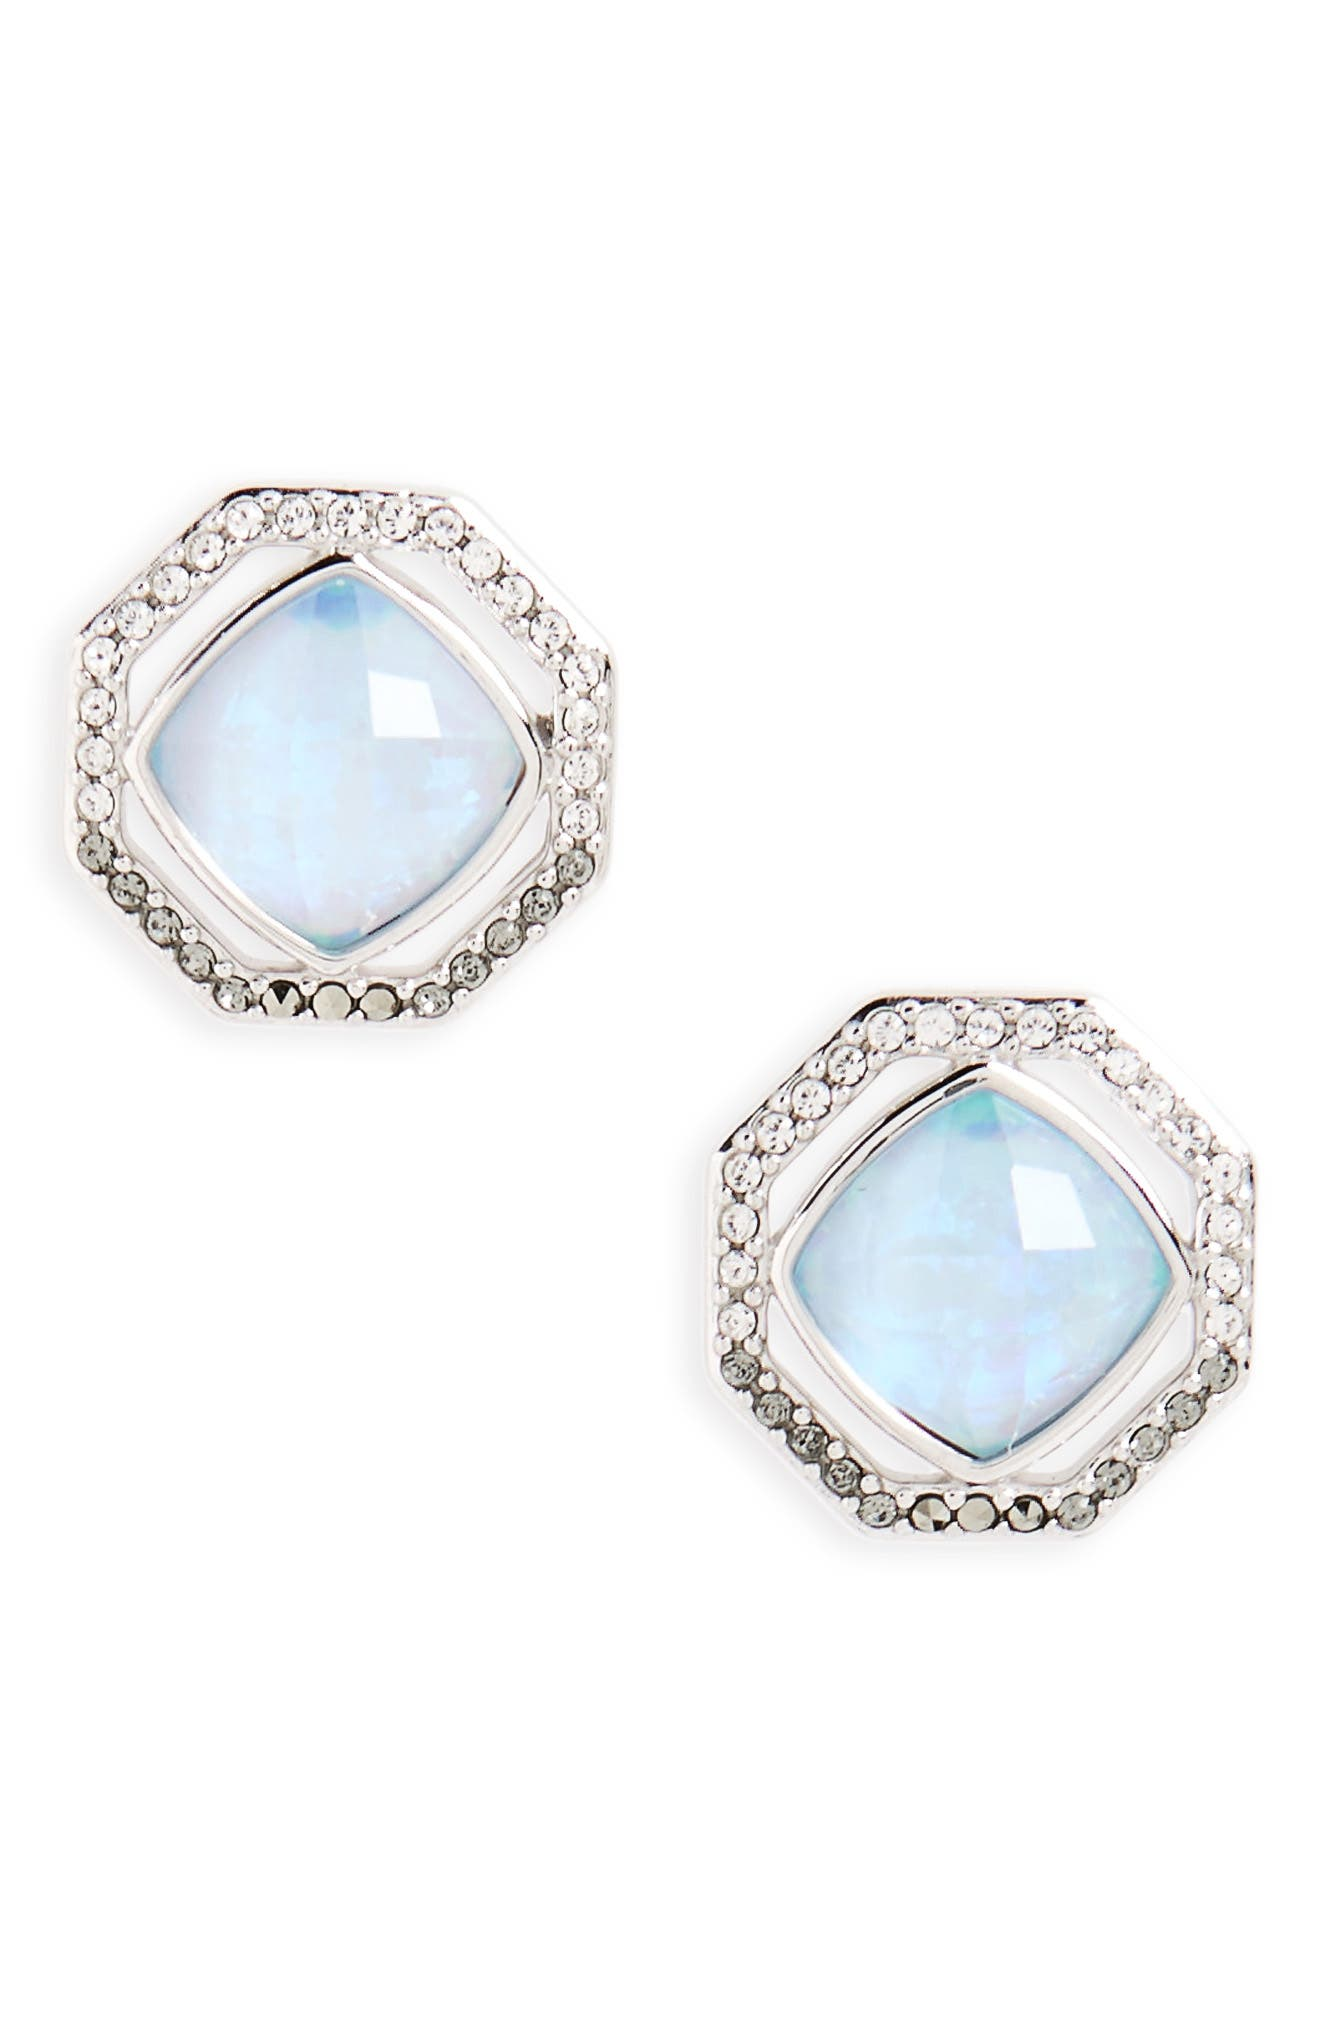 Judith Jack Paradise Stud Earrings